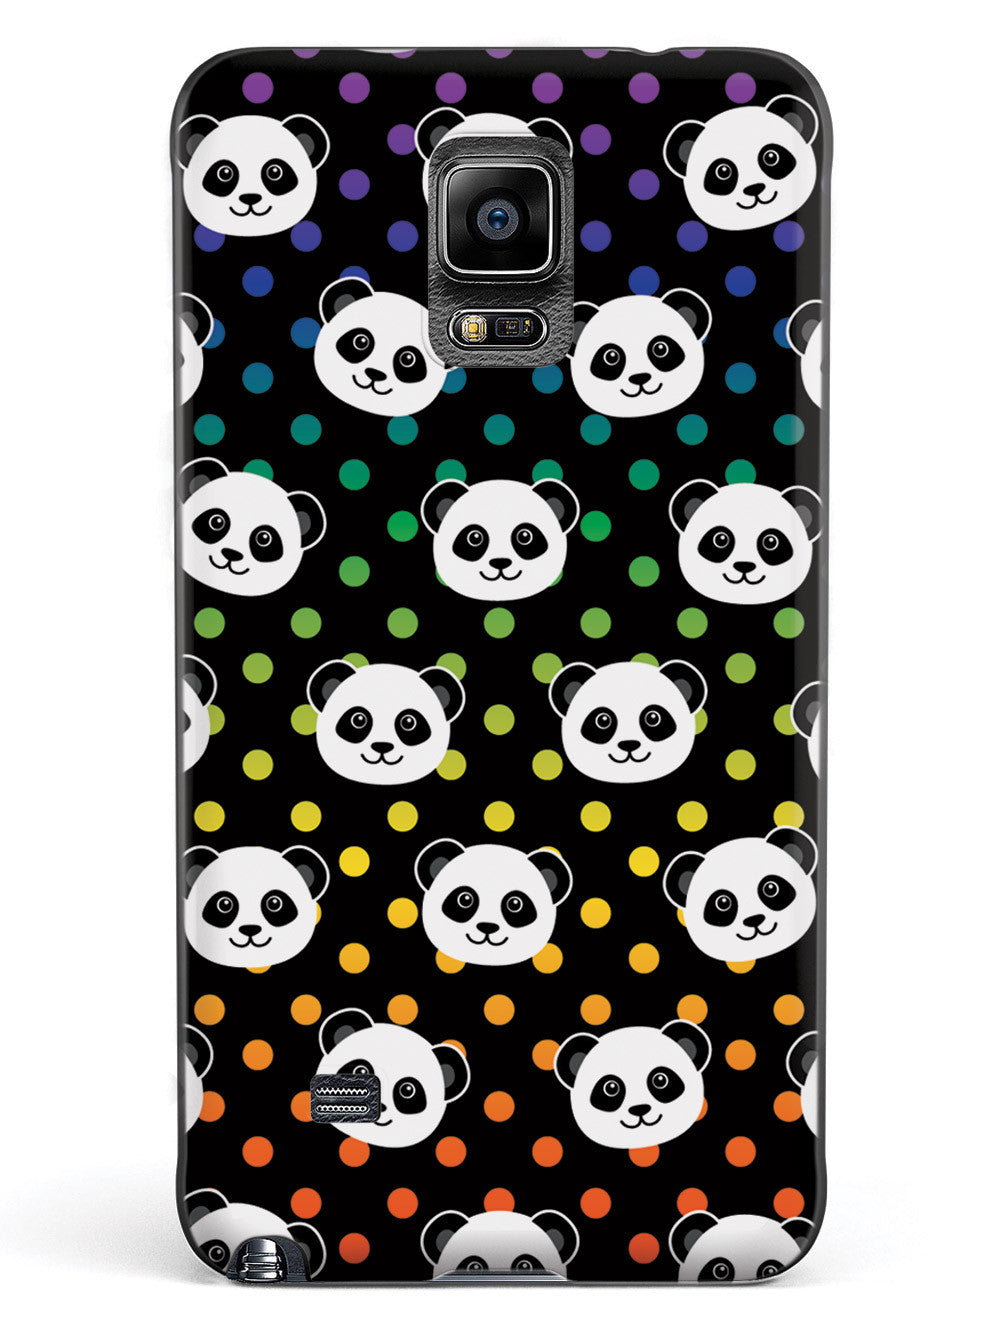 Cute Panda Pattern - Rainbow Polka Dots - Black Case